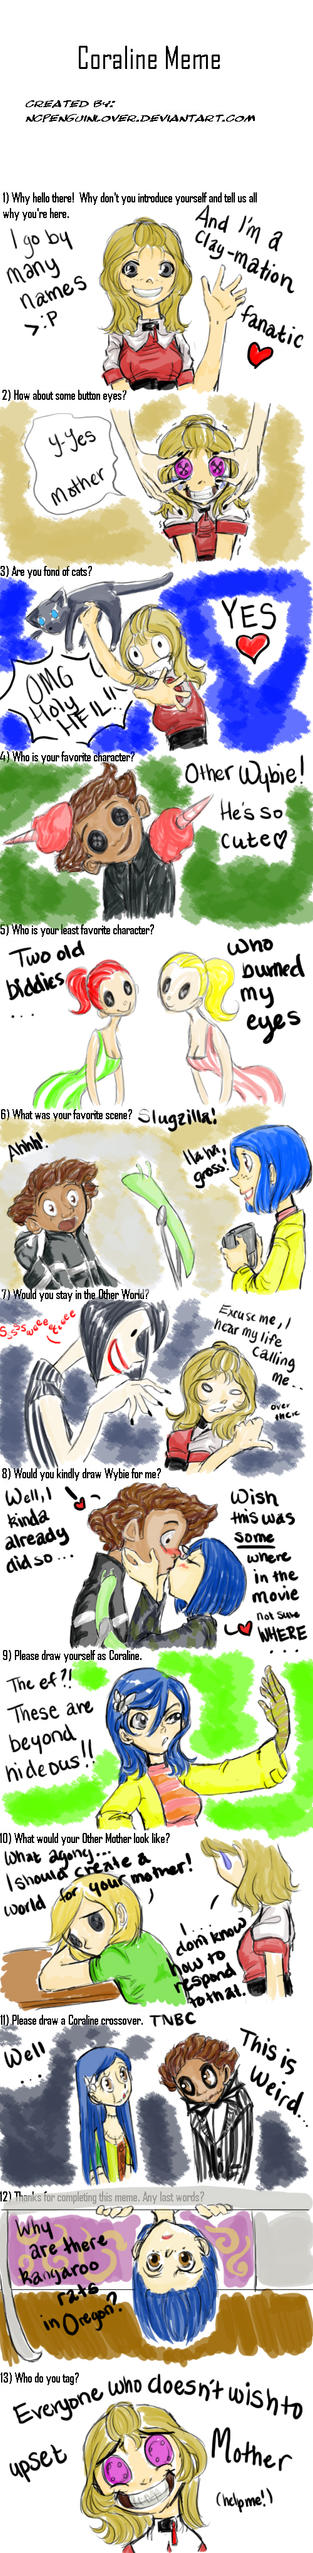 Meme for CORaline by ZOE-Productions